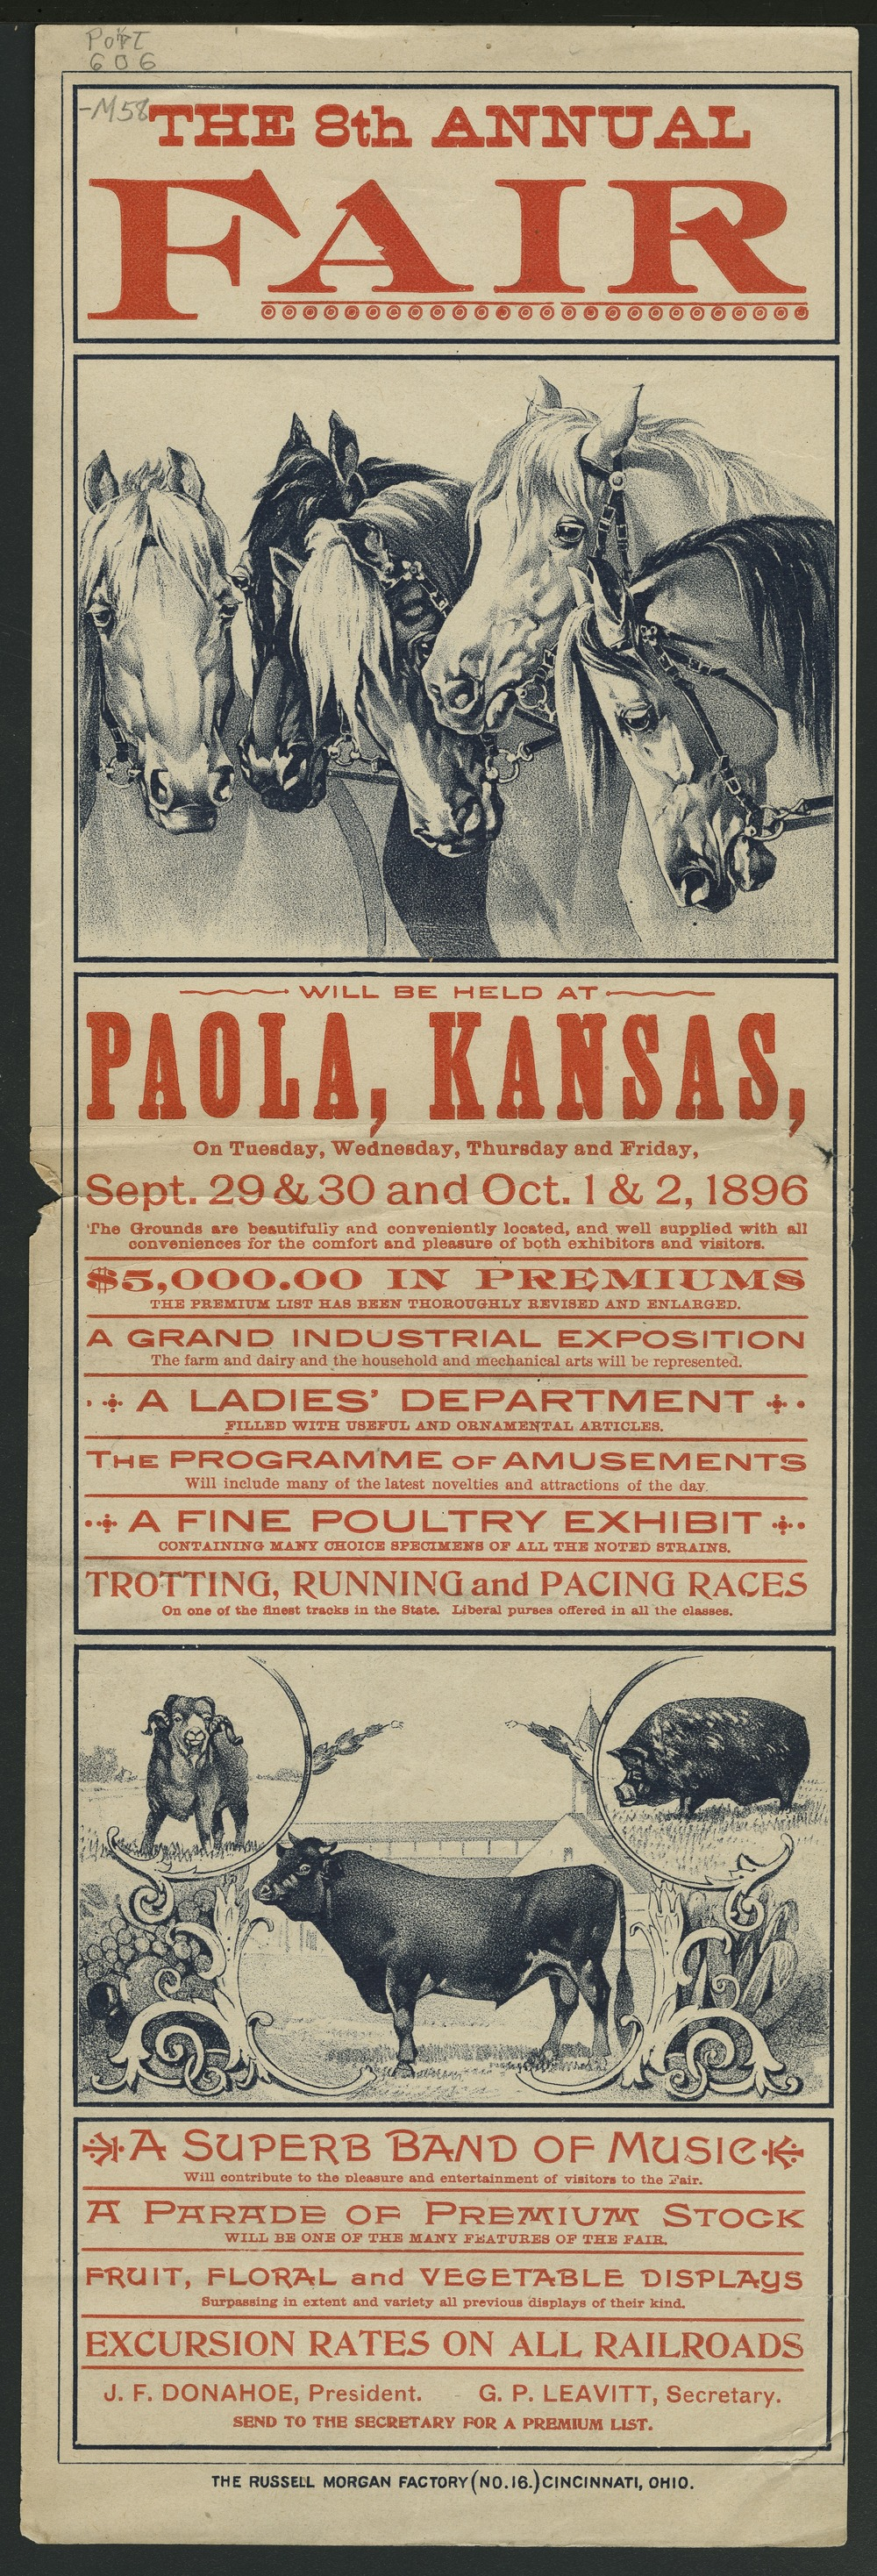 The 8th annual fair will be held at Paola, Kansas - 2